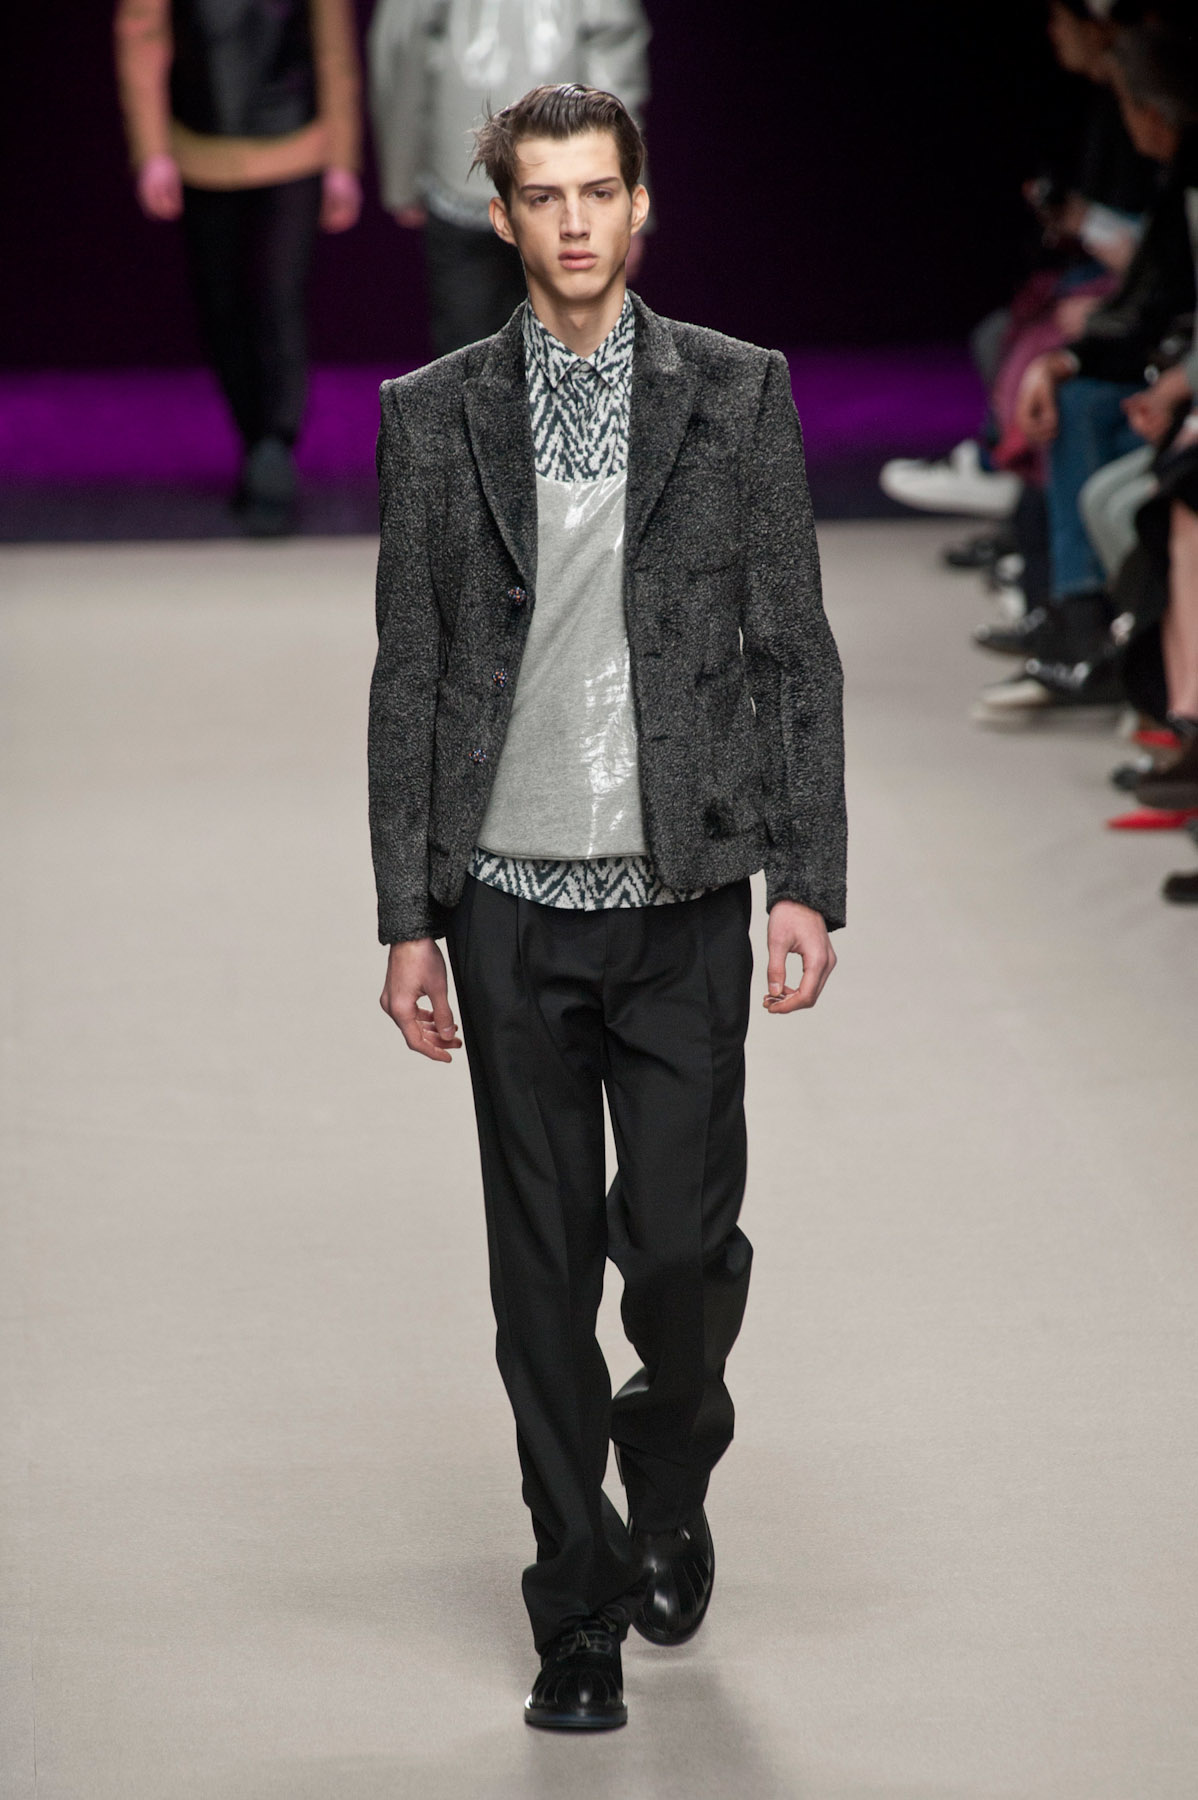 vanassche-MEN-paris-inv2014-27